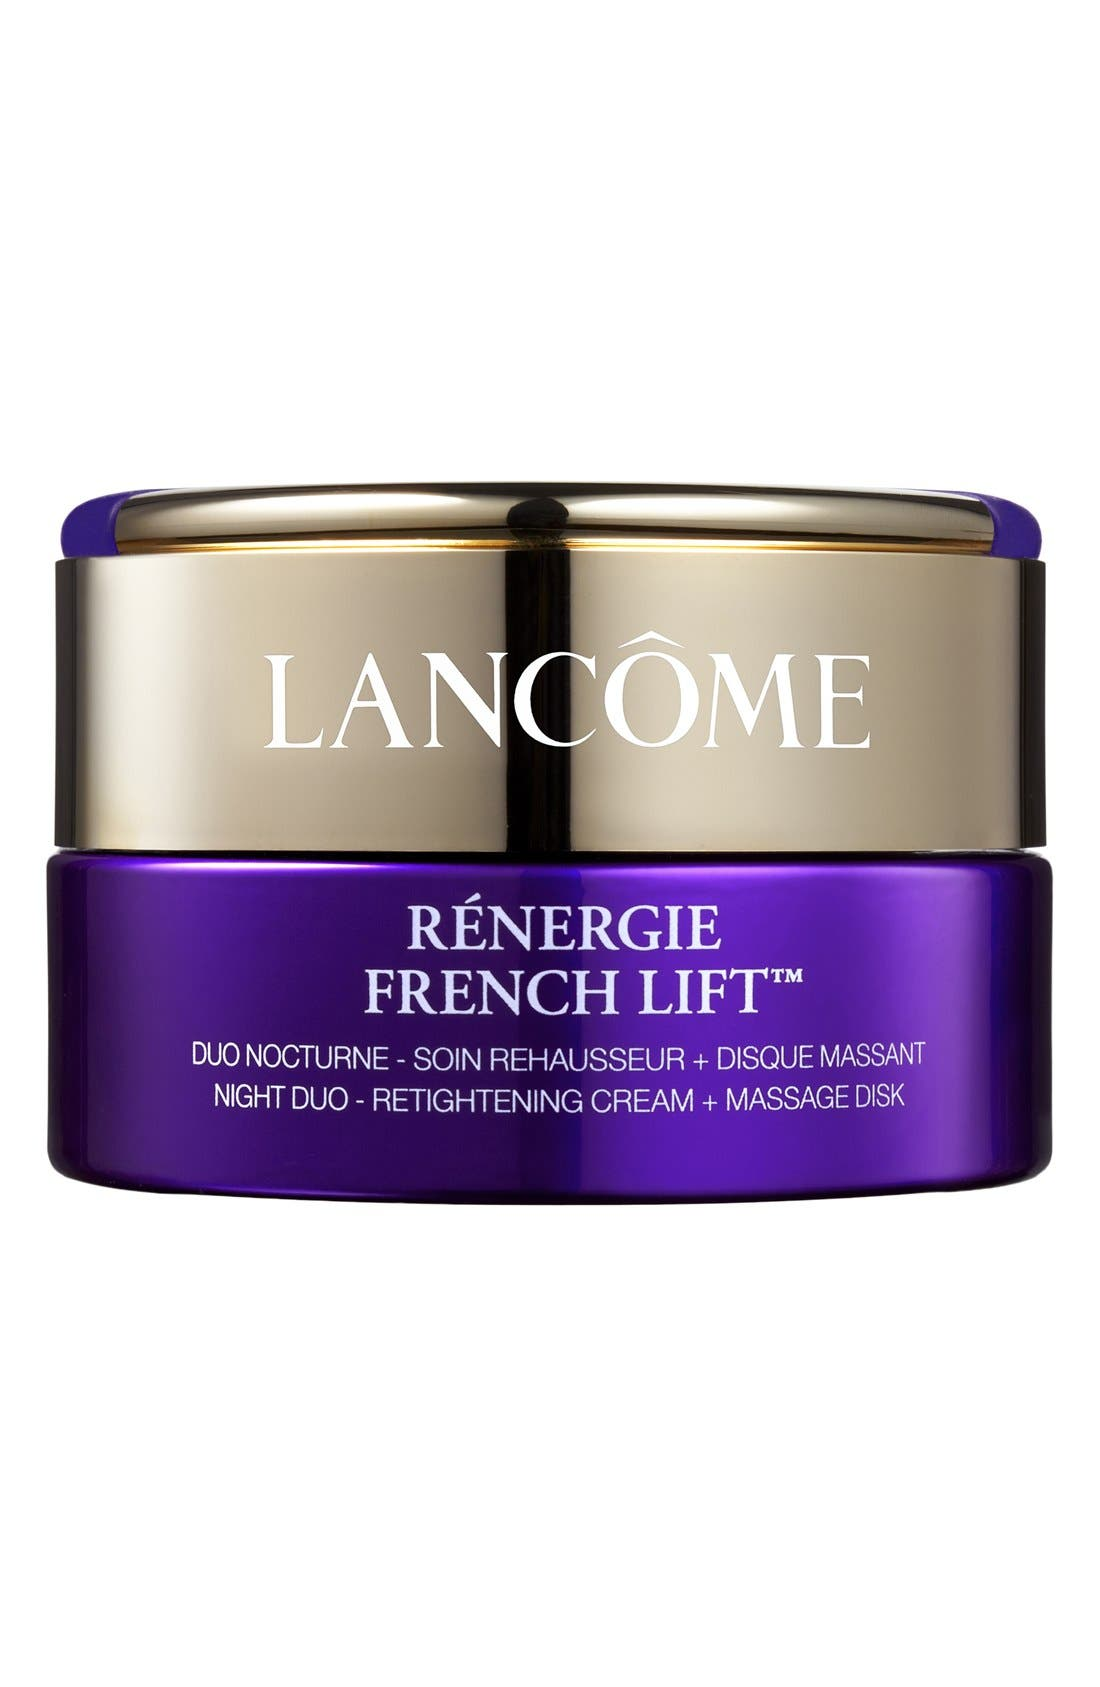 Rénergie Lift Multi-Action French Lift Retightening Moisturizer Cream,                             Main thumbnail 1, color,                             NO COLOR